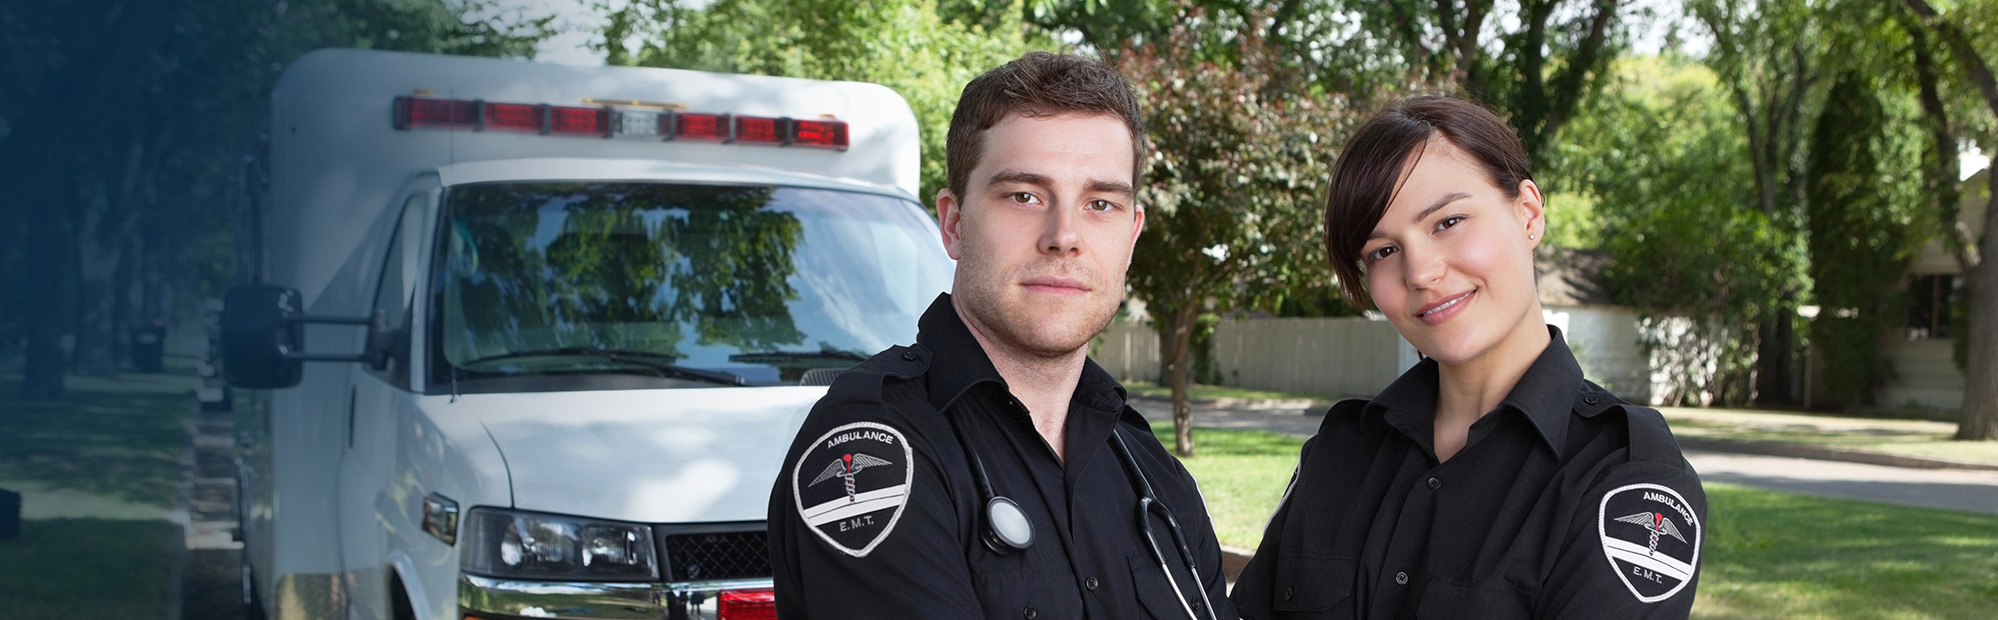 Emergency Professionals with Ambulance